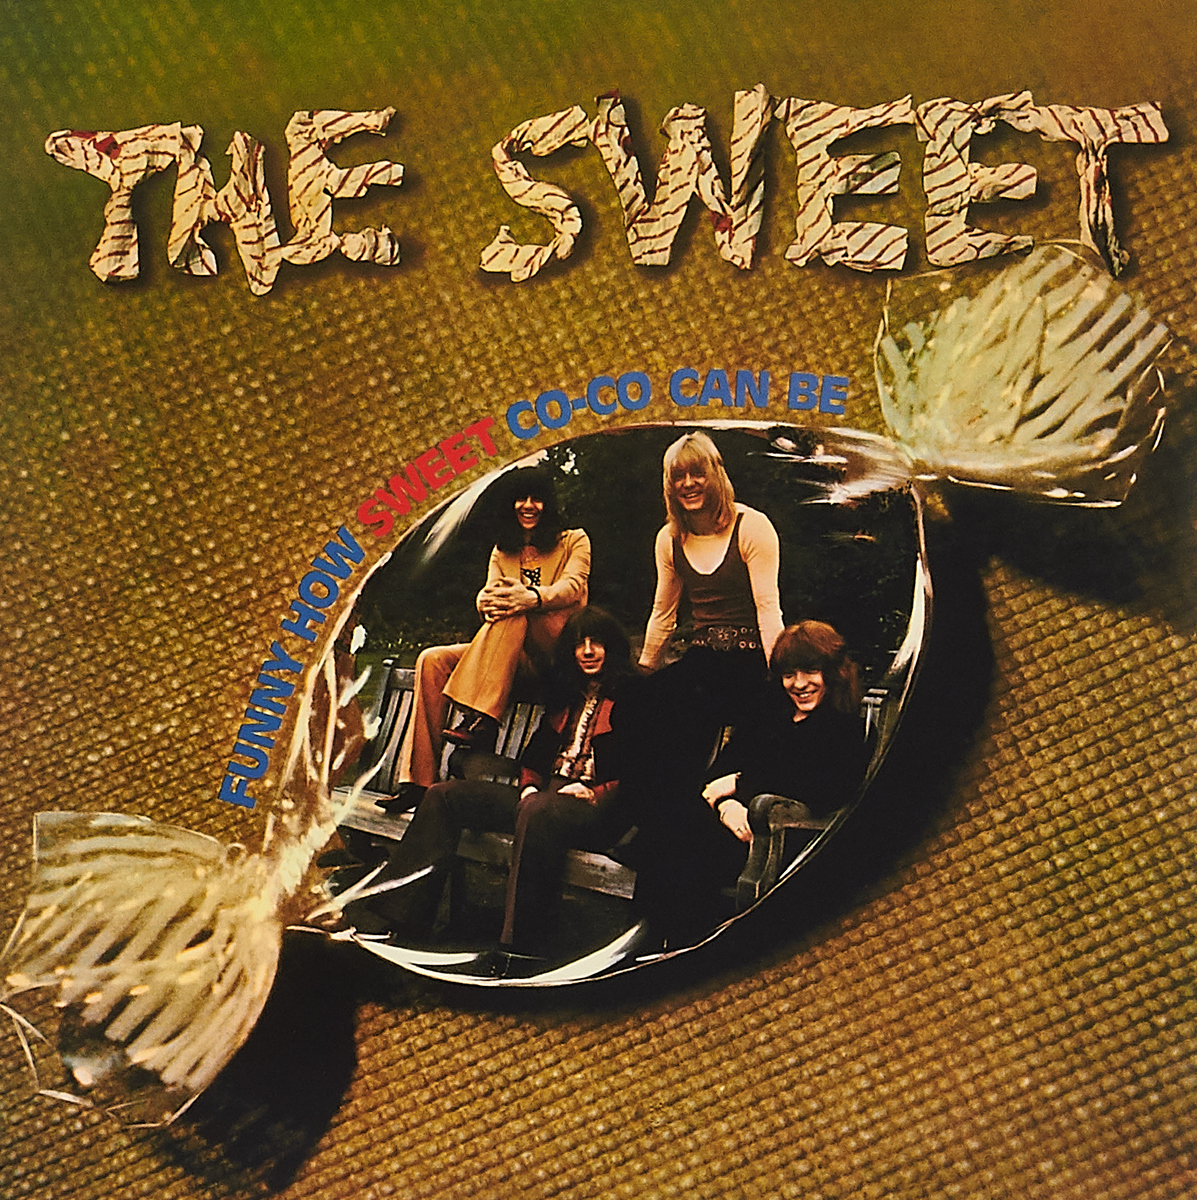 Sweet The Sweet. Funny, How Sweet Co Co Can Be (New Vinyl Edition) (LP) sweet sweet give us a wink new vinyl edition lp